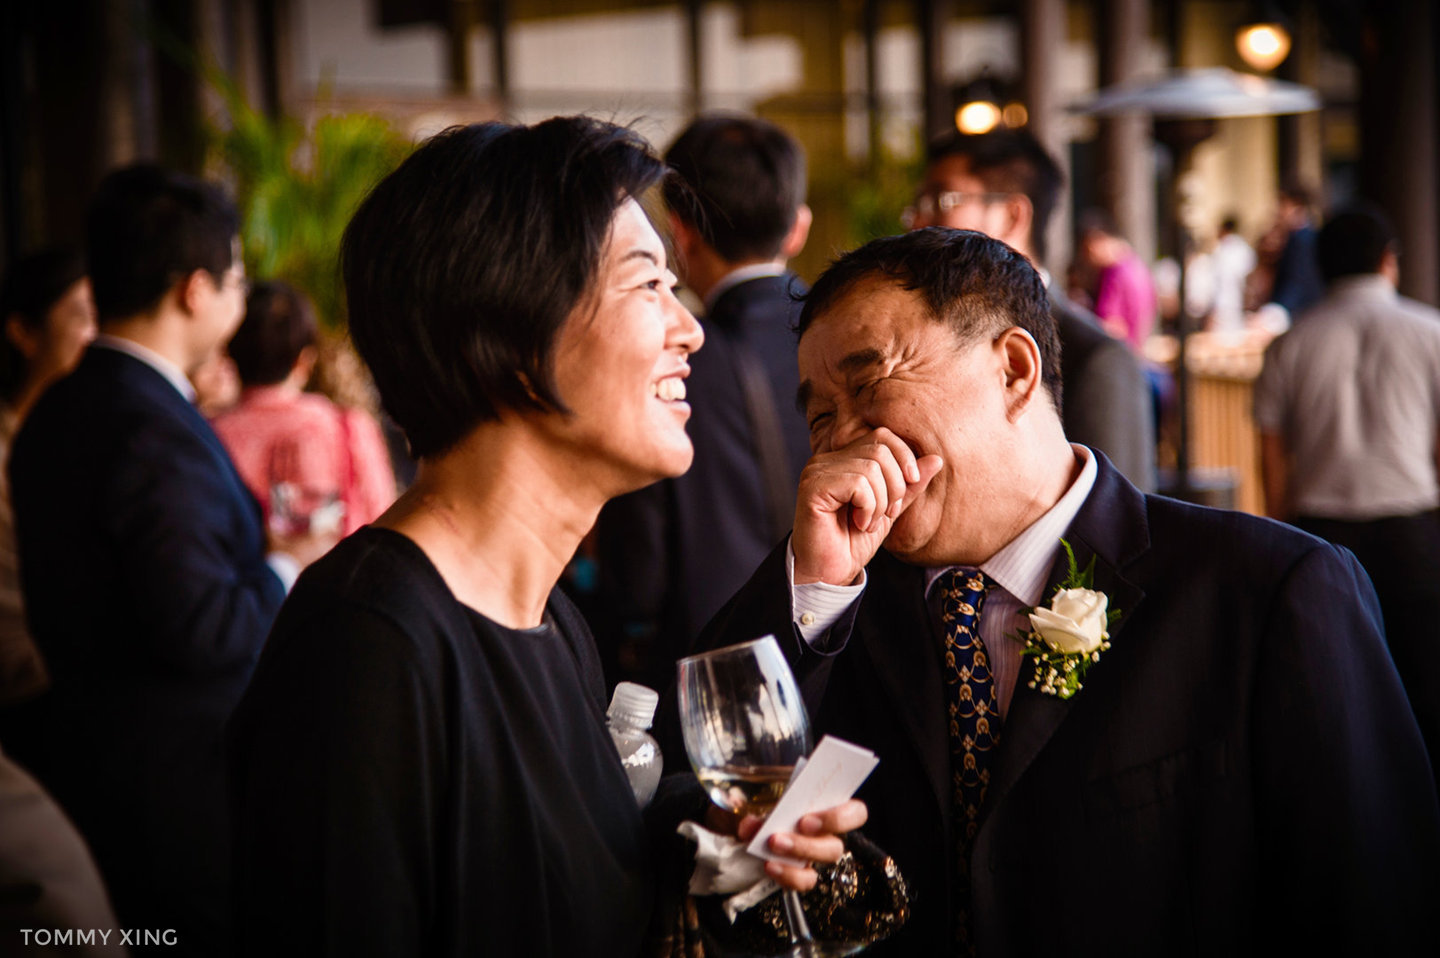 Paradise Point Resort Wedding Xiaolu & Bin San Diego 圣地亚哥婚礼摄影跟拍 Tommy Xing Photography 洛杉矶婚礼婚纱照摄影师 204.jpg